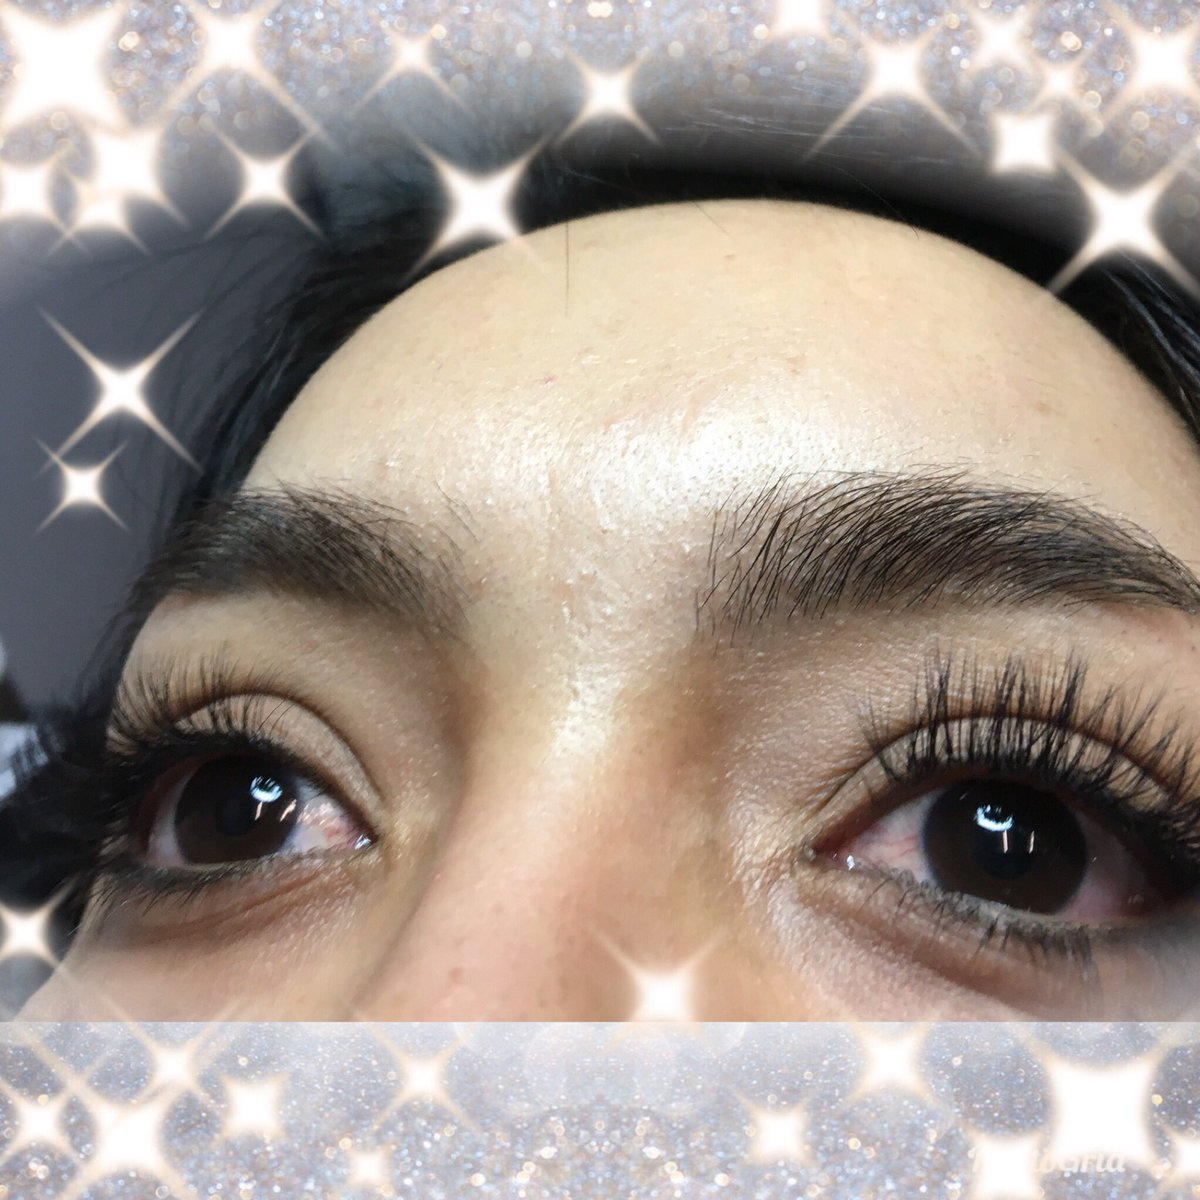 20f9800bbb6 A great example of a set of Novalash eyelash extensions. By lash artist  Ginny. Call us today @ 843-790-5274 to book your appointment. ...